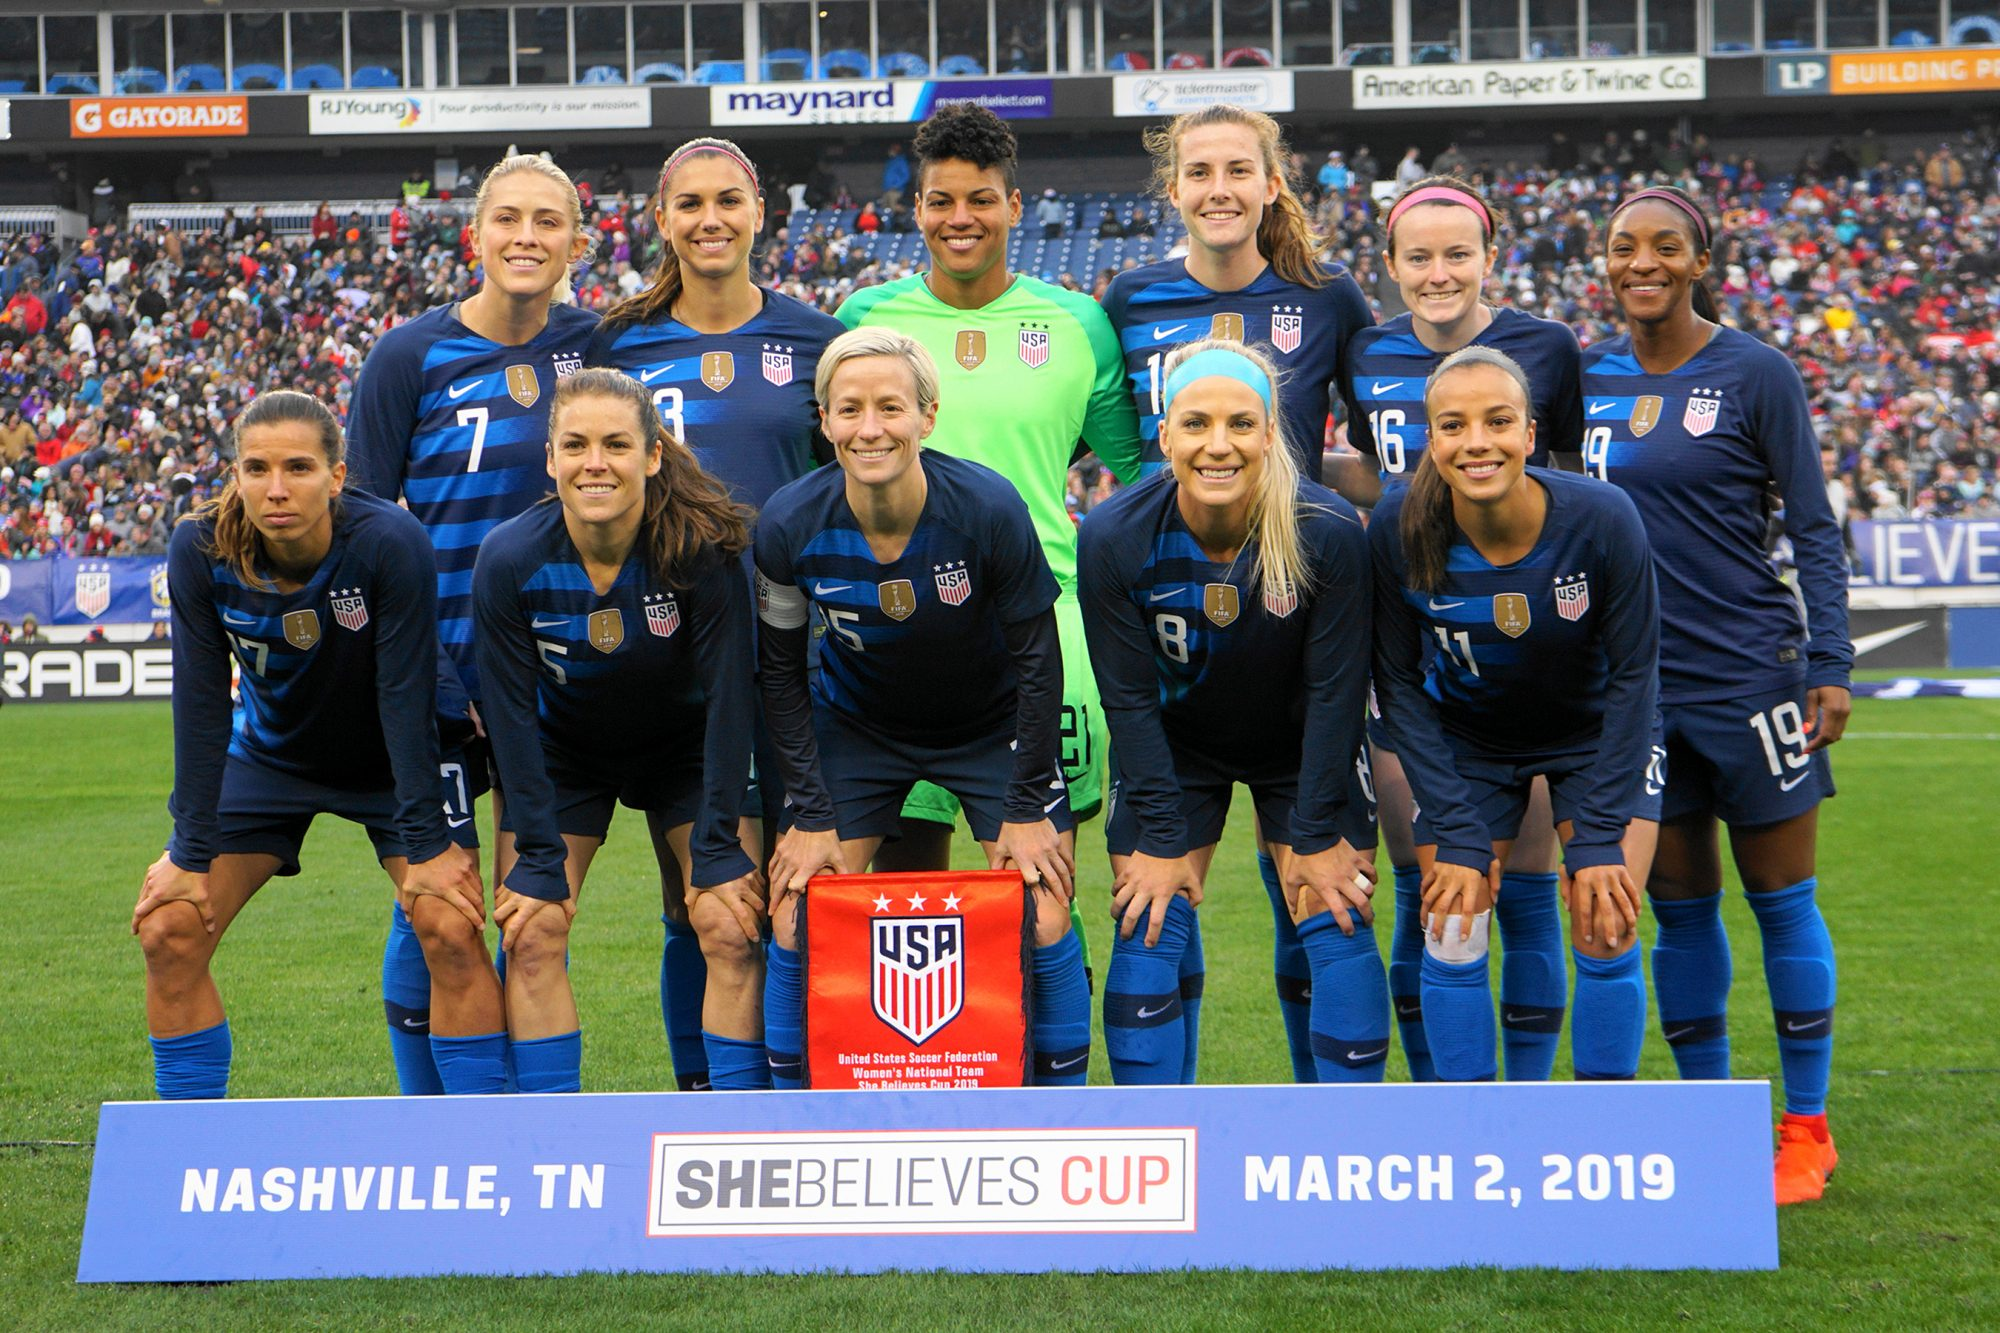 USA Women's Soccer Team - 2019 SheBelieves Cup - United States v England